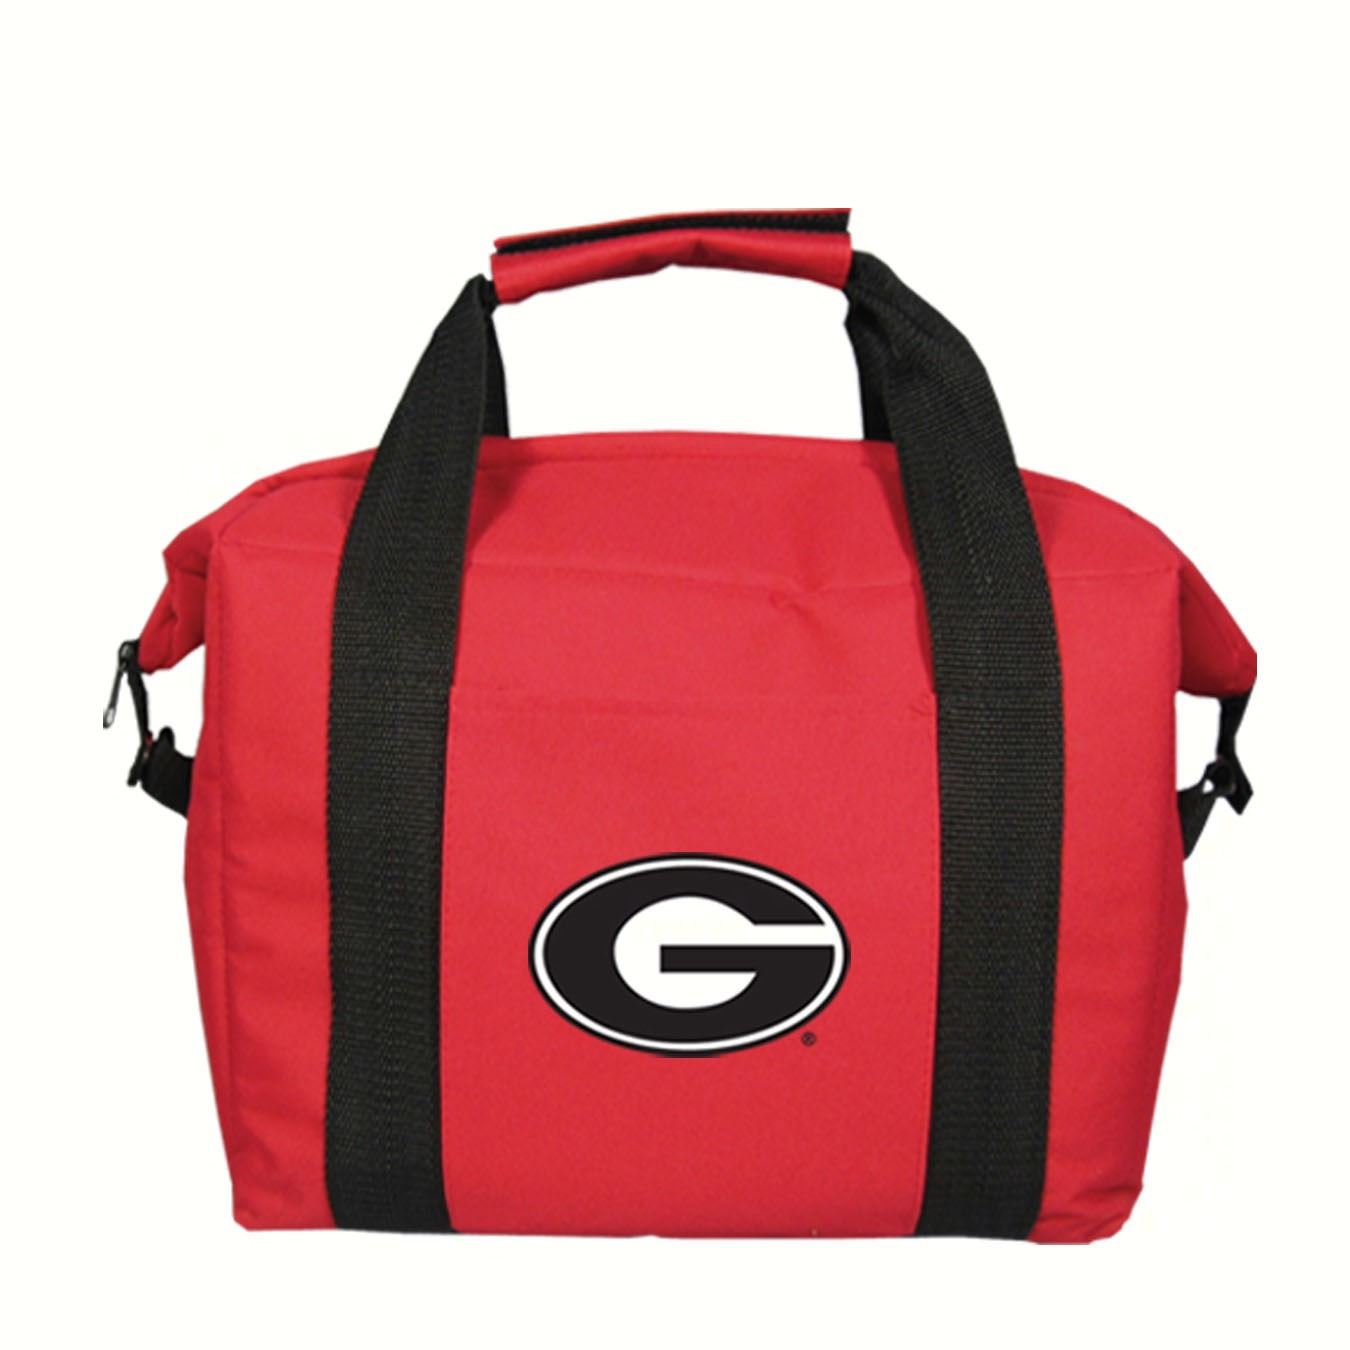 Kooler Bag - Georgia Bulldogs (Holds a 12 pack)